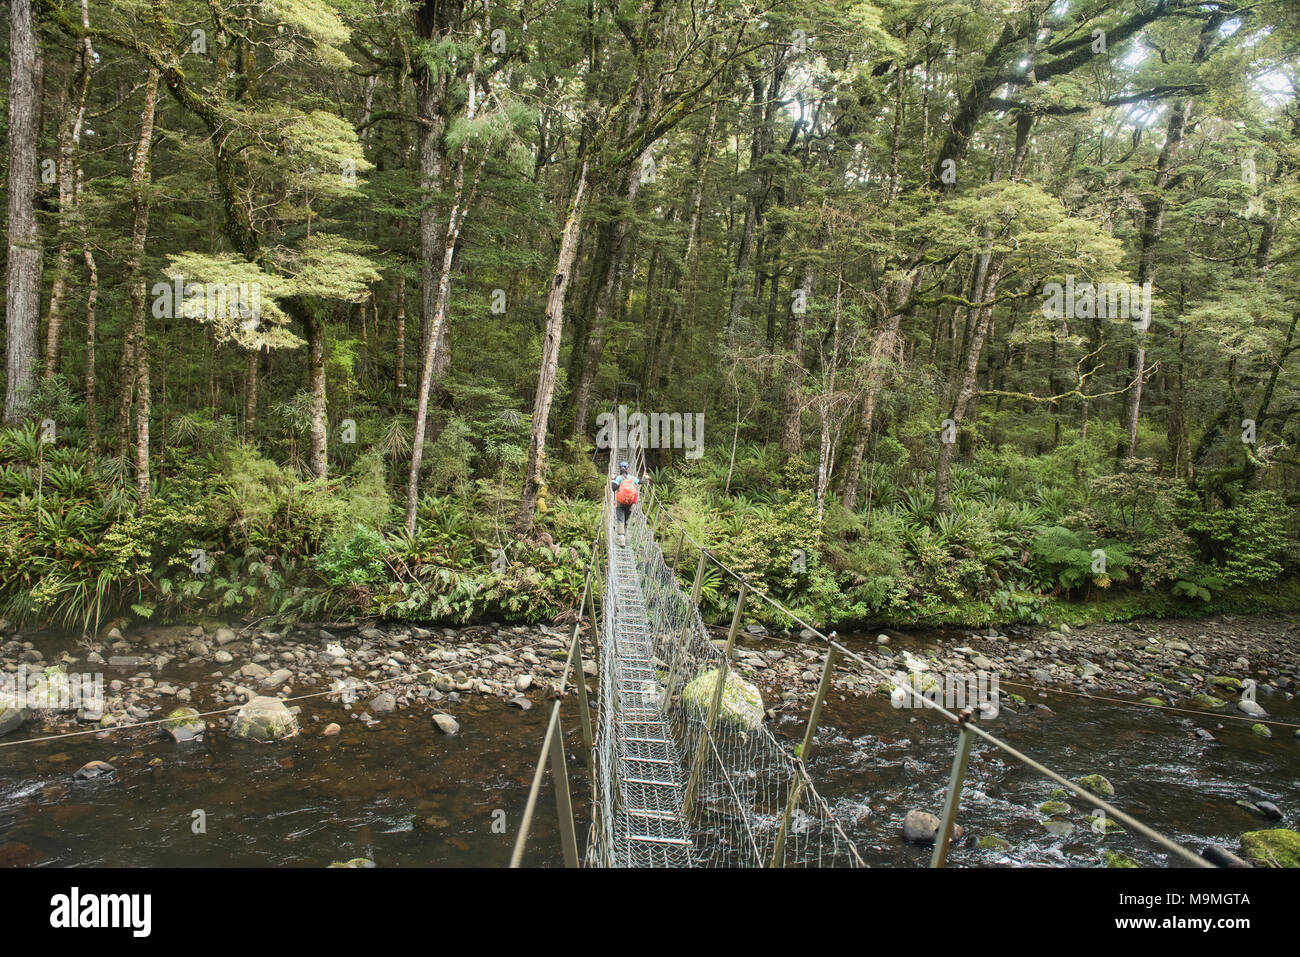 Catlins River Stock Photos & Catlins River Stock Images - Alamy